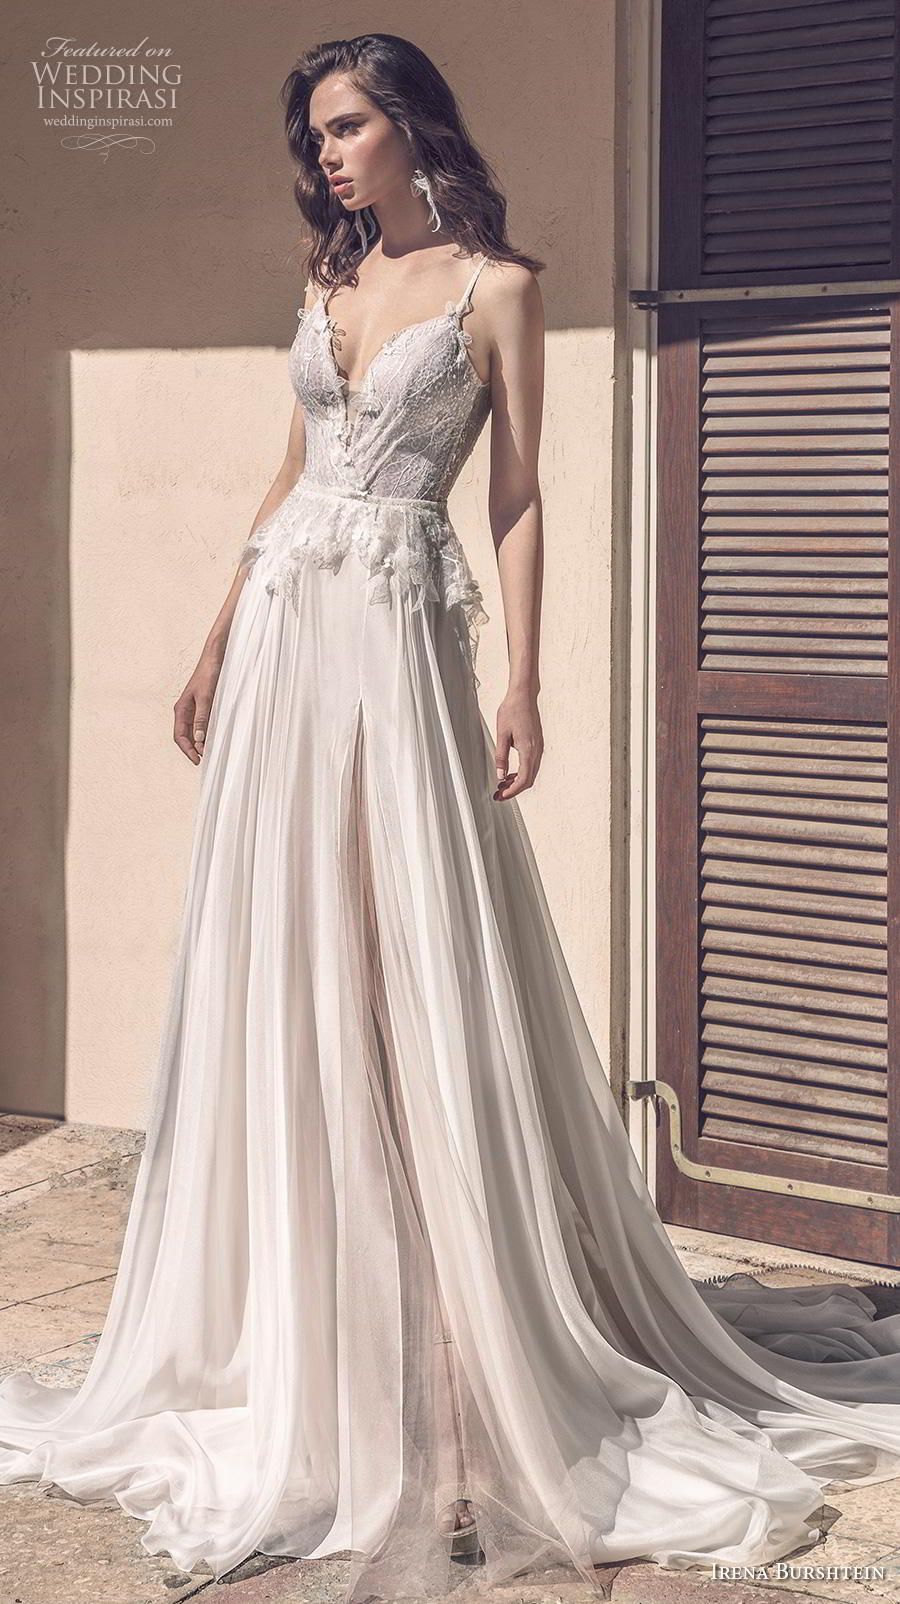 irena burshtein 2020 bridal sleeveless thin strap deep sweetheart neckline heavily embellished bodice romantic soft a  line wedding dress backless scoop back chapel train (2) mv